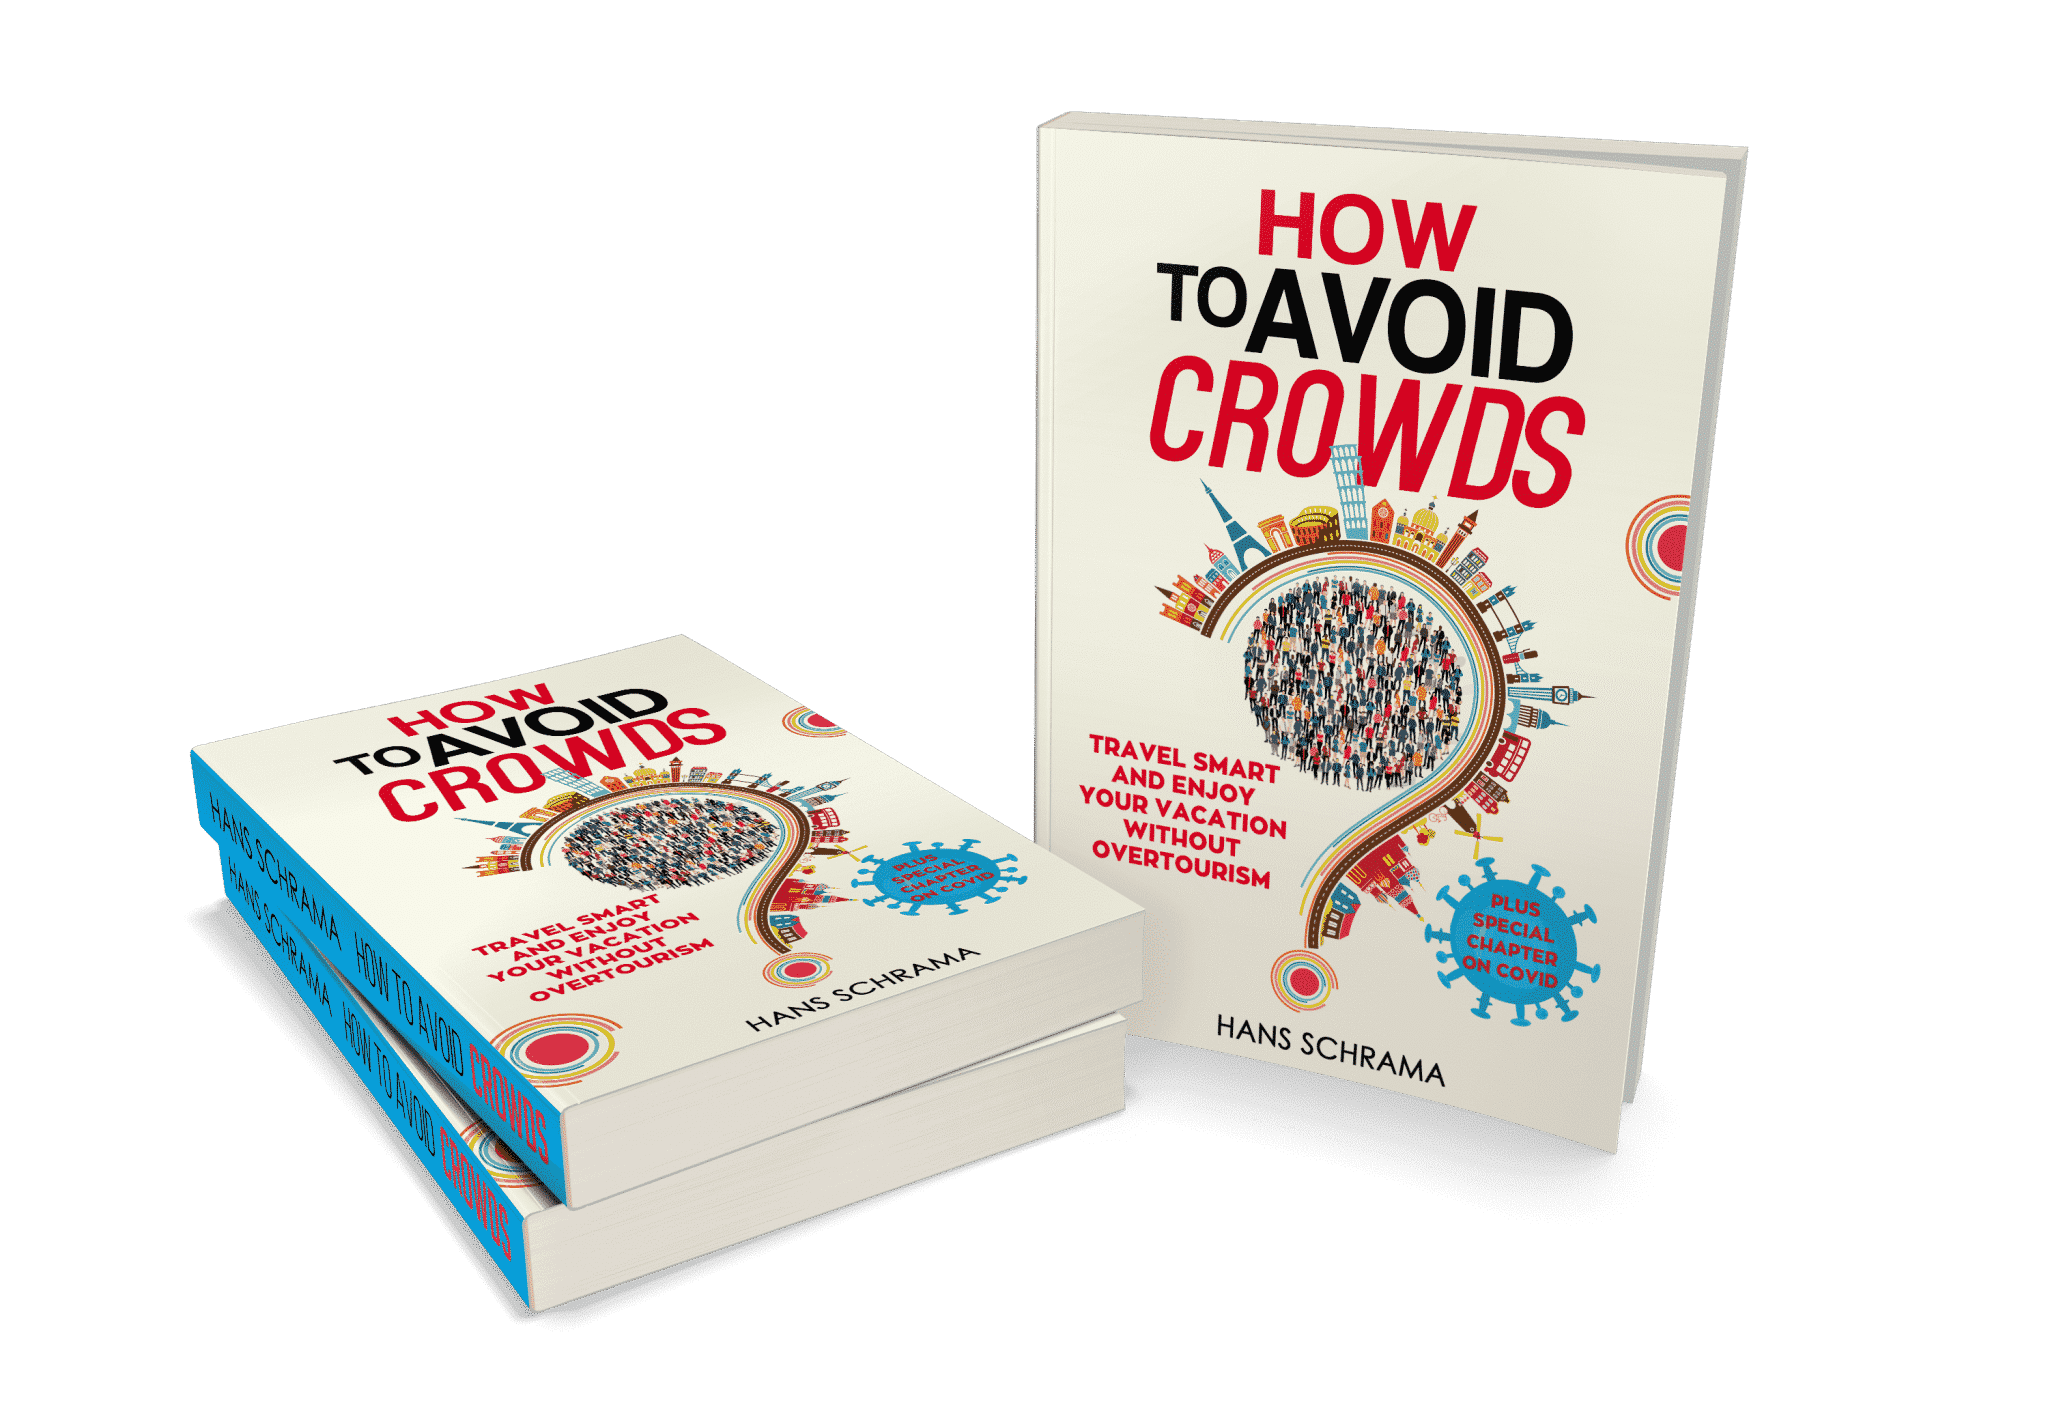 How to avoid crowds books